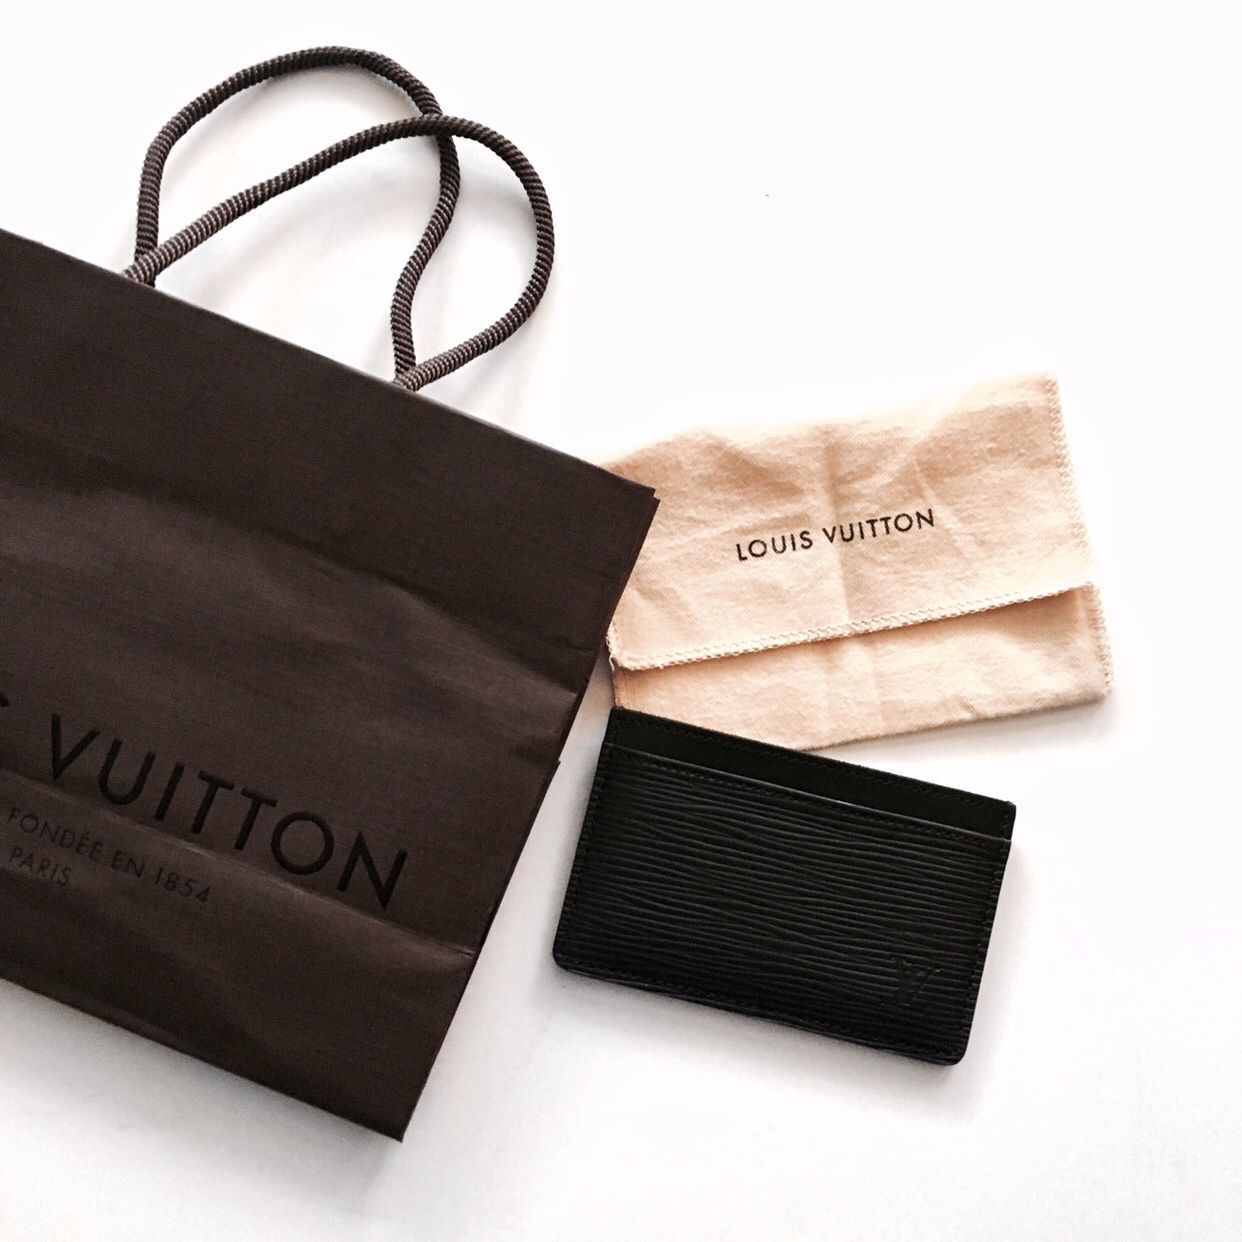 Louis Vuitton Epi Leather Simple Card Case Review | CoffeeAndHandbags.com